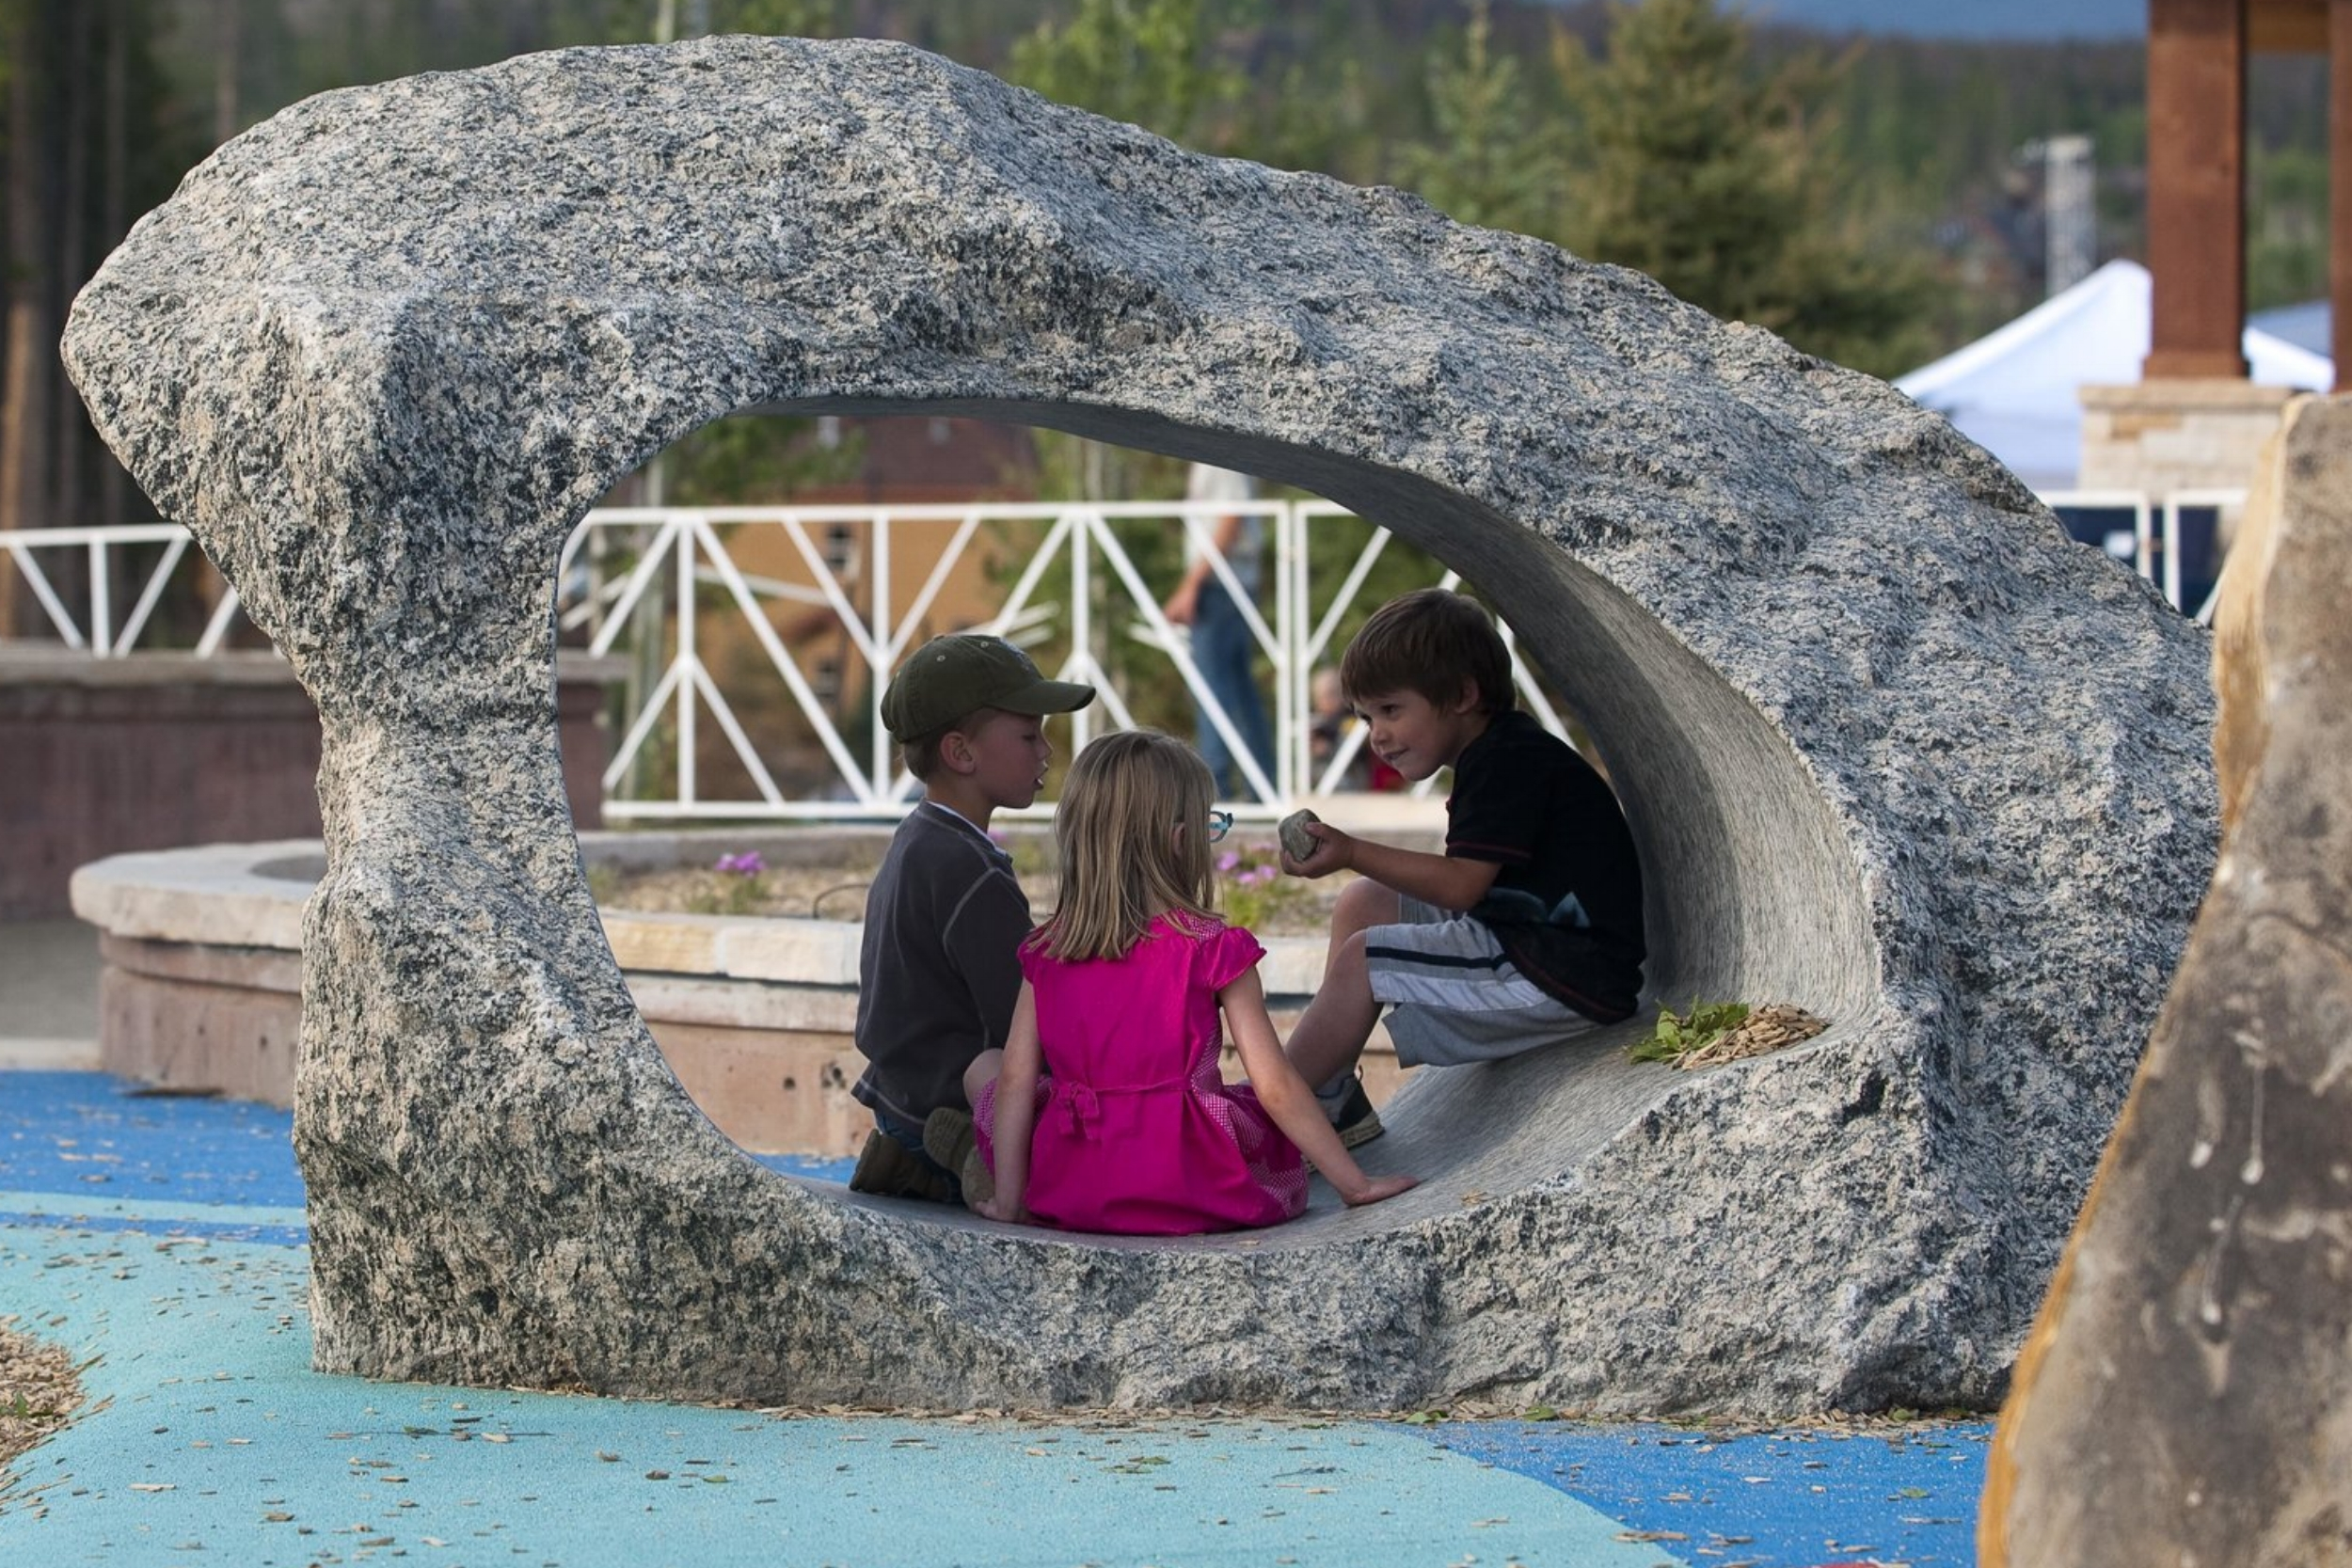 Kids exploring and having an adventure social in a boulder rock playground equipment